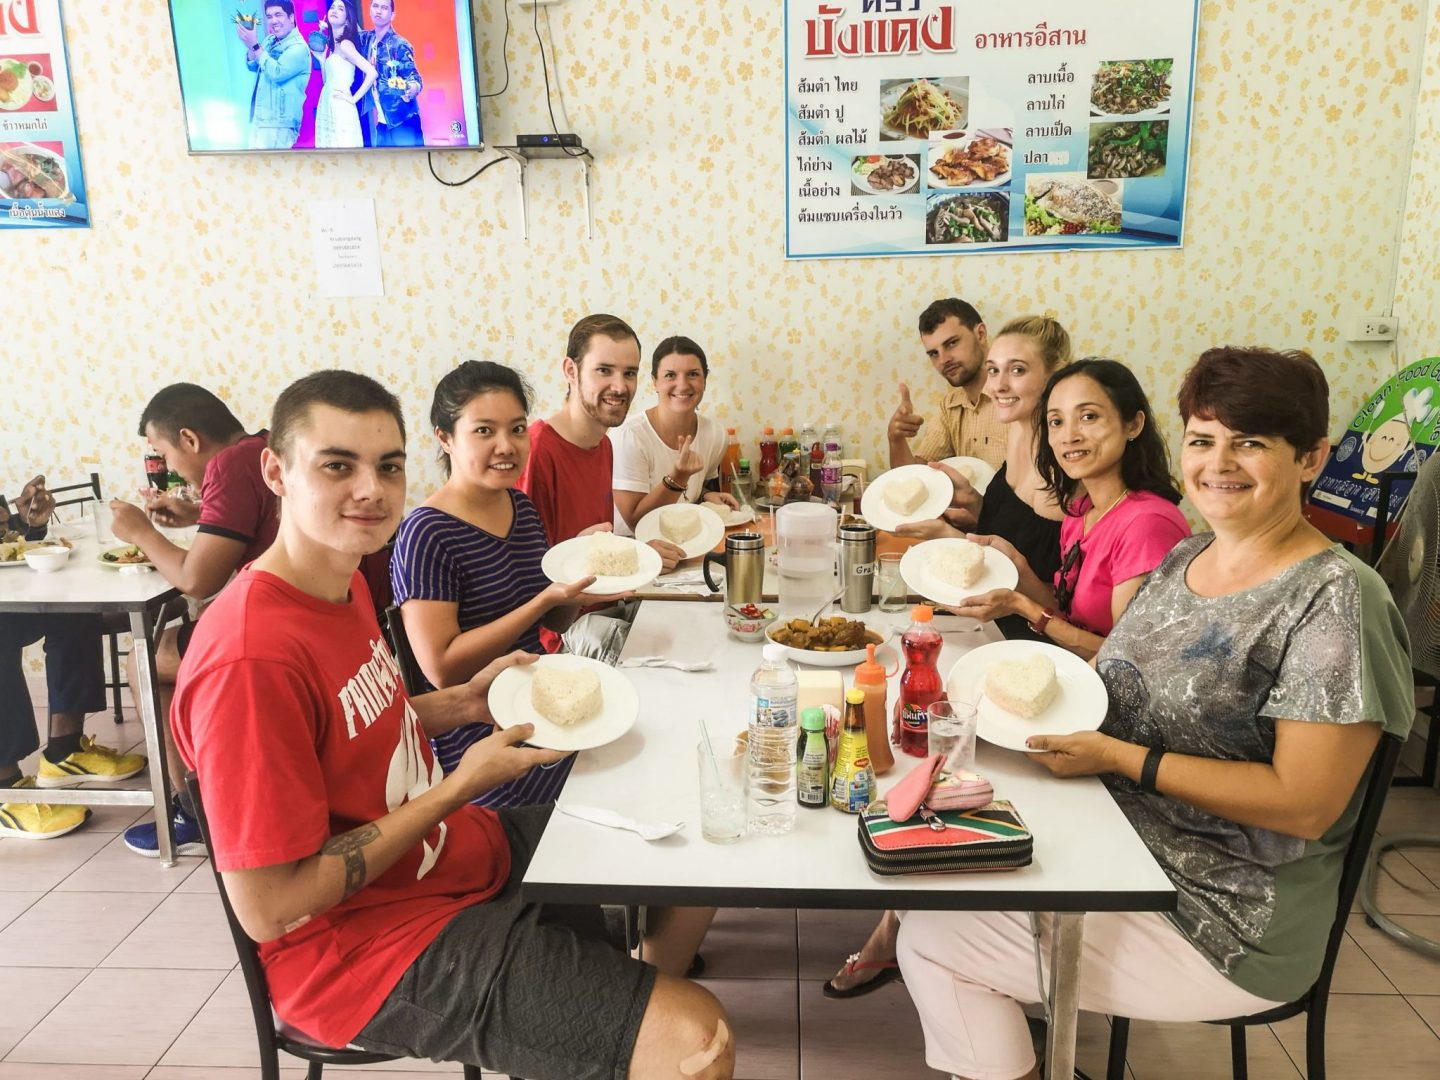 Byron and Tammy with a bunch of friends in Thailand, eating lunch